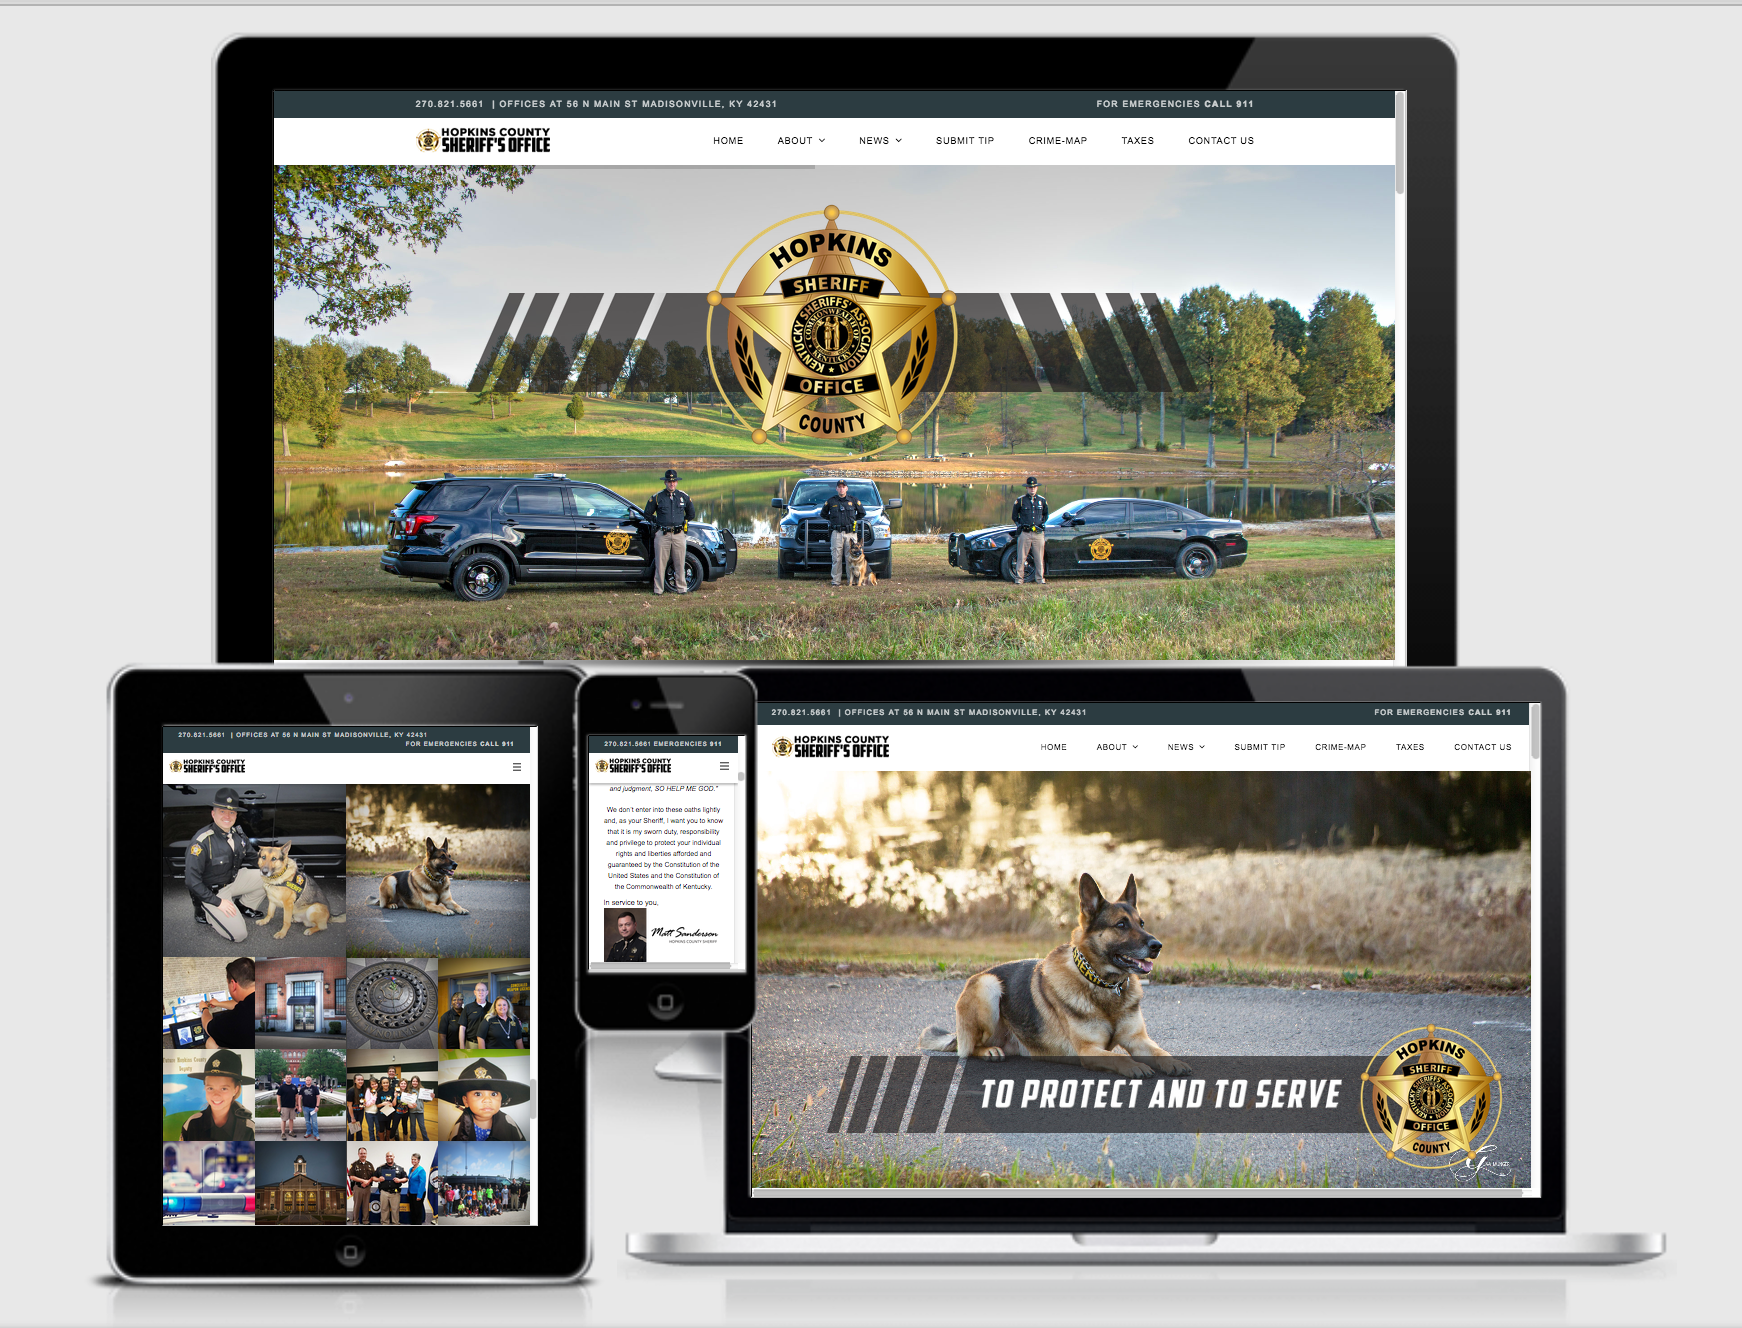 Hopkins County Sheriff Website image